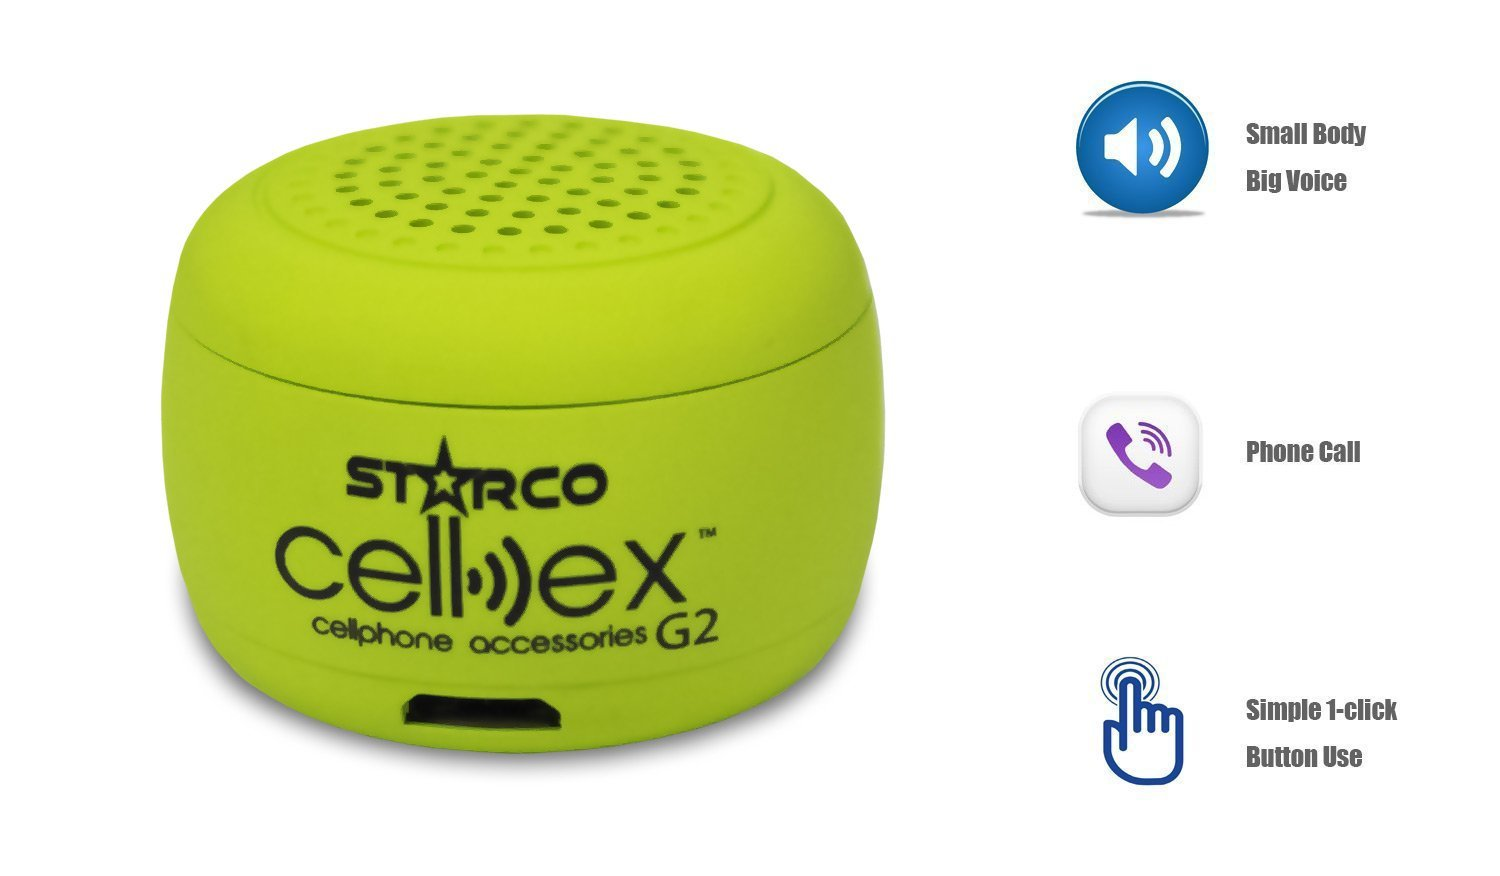 Amazon.com: Starco Cellex G2,Mini Bluetooth Wireless Speaker,2 in 1 Music Playback and answering/Making Calls,Loud Sound and Sleek Design: Home Audio & ...